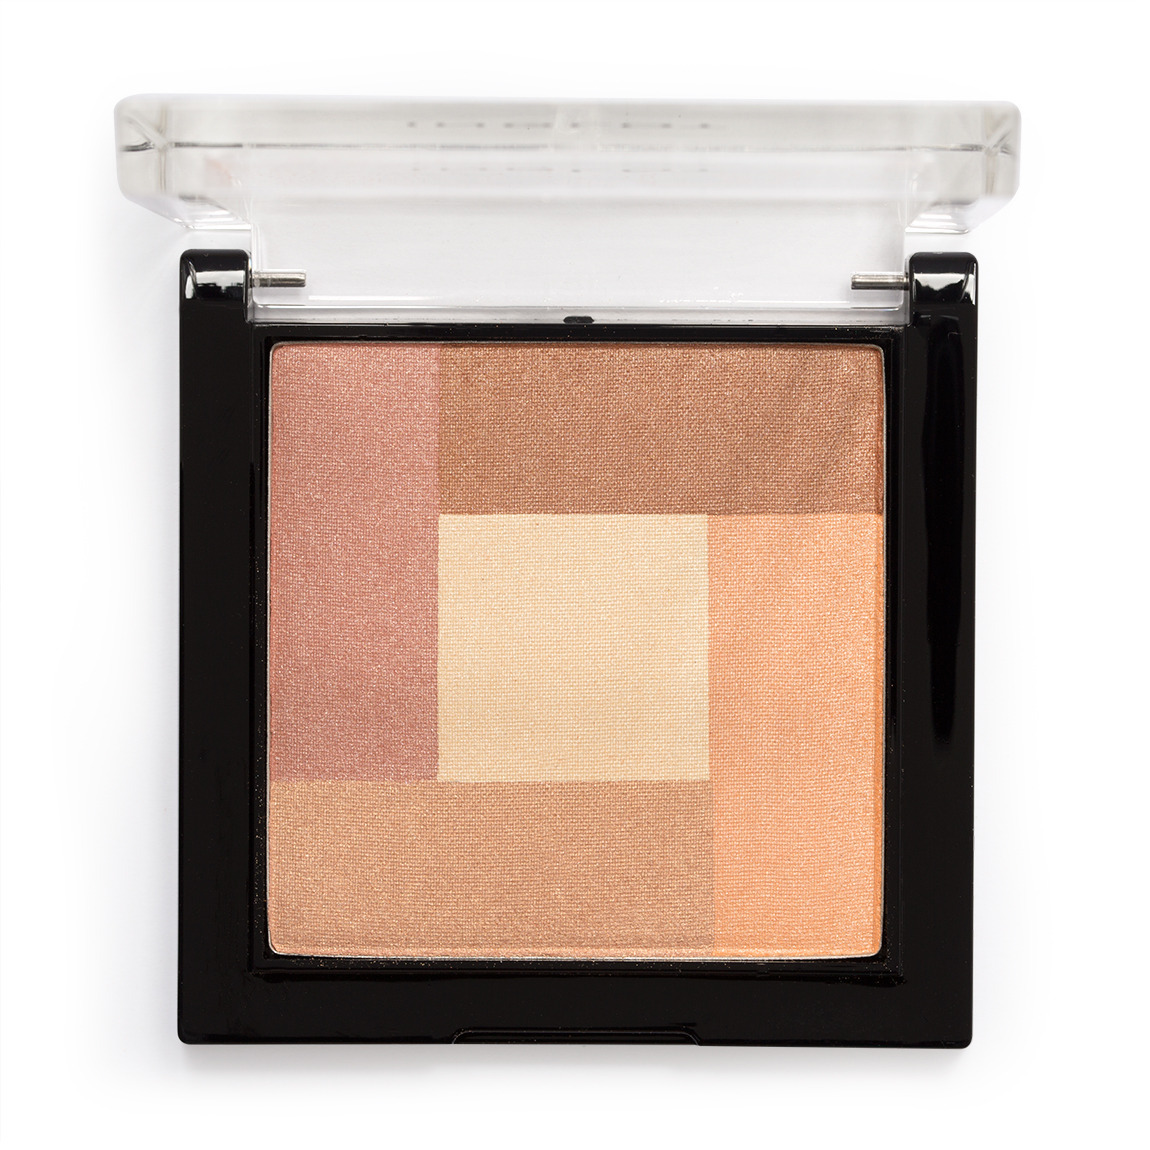 Inglot Cosmetics AMC Multicolour Highlighting Powder FEB 86 alternative view 1 - product swatch.